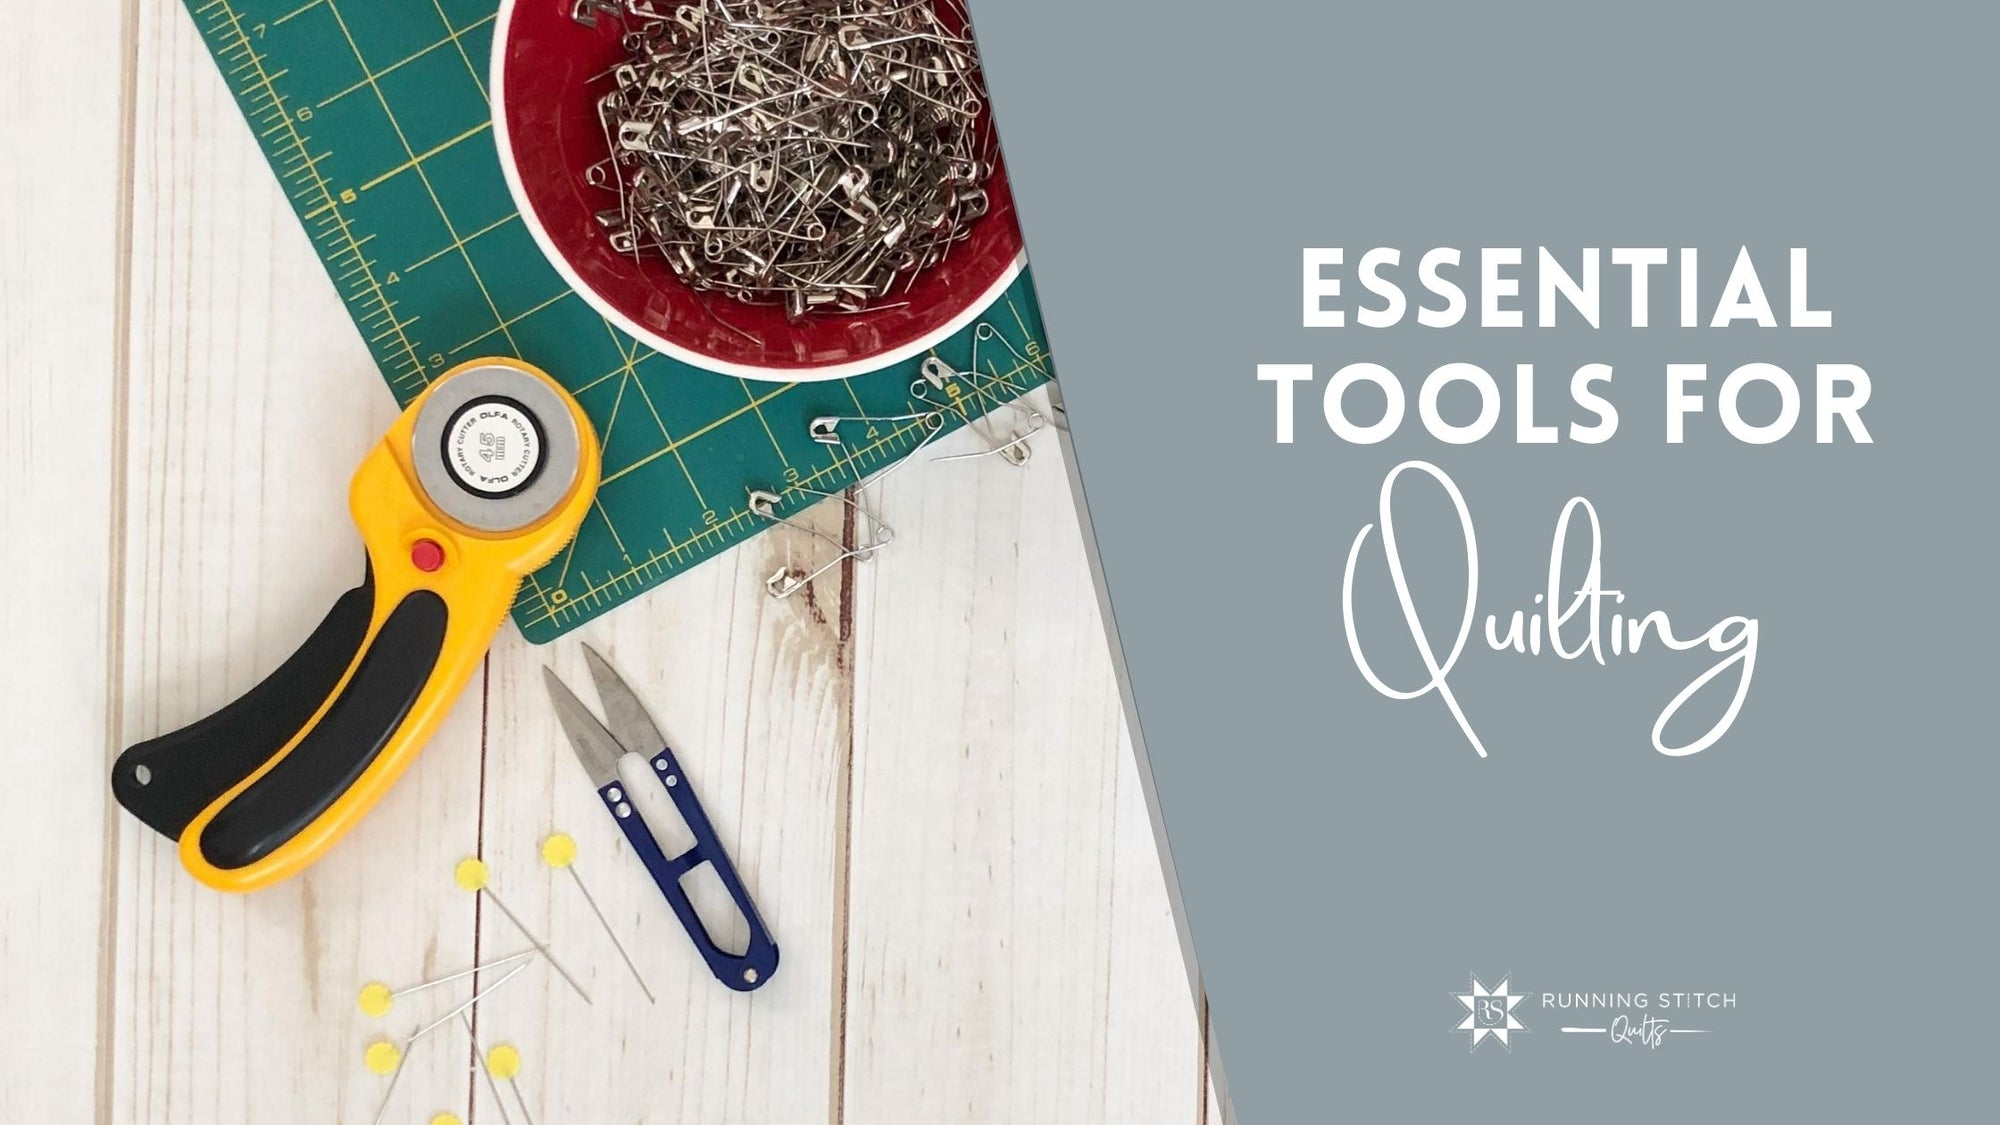 Essential Tools for Quilting